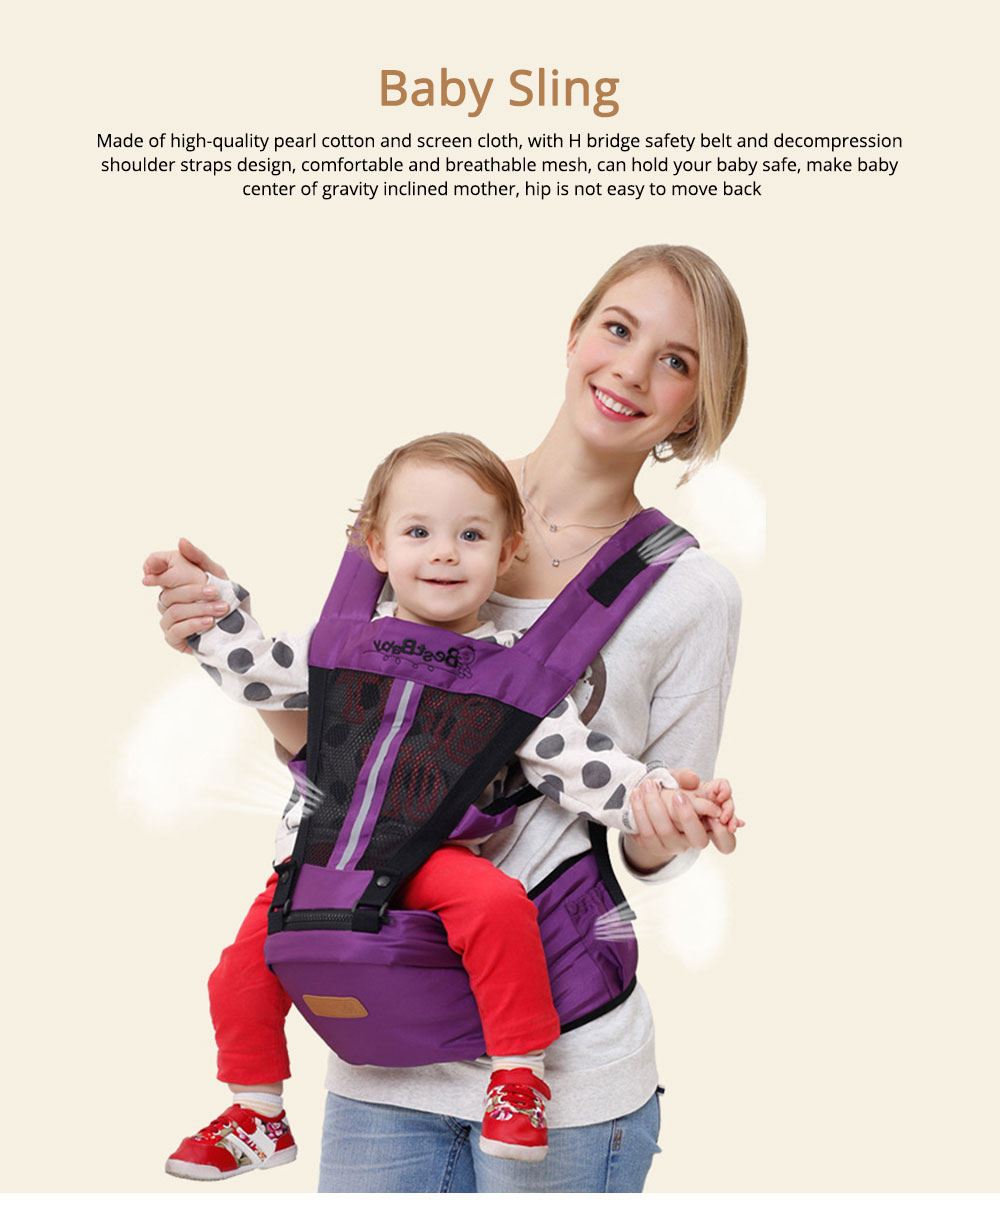 Ergonomic Baby Carrier Baby Sling, Soft & Breathable Baby Carriers Backpack Front and Back for Babies Younger than 36 Months 0